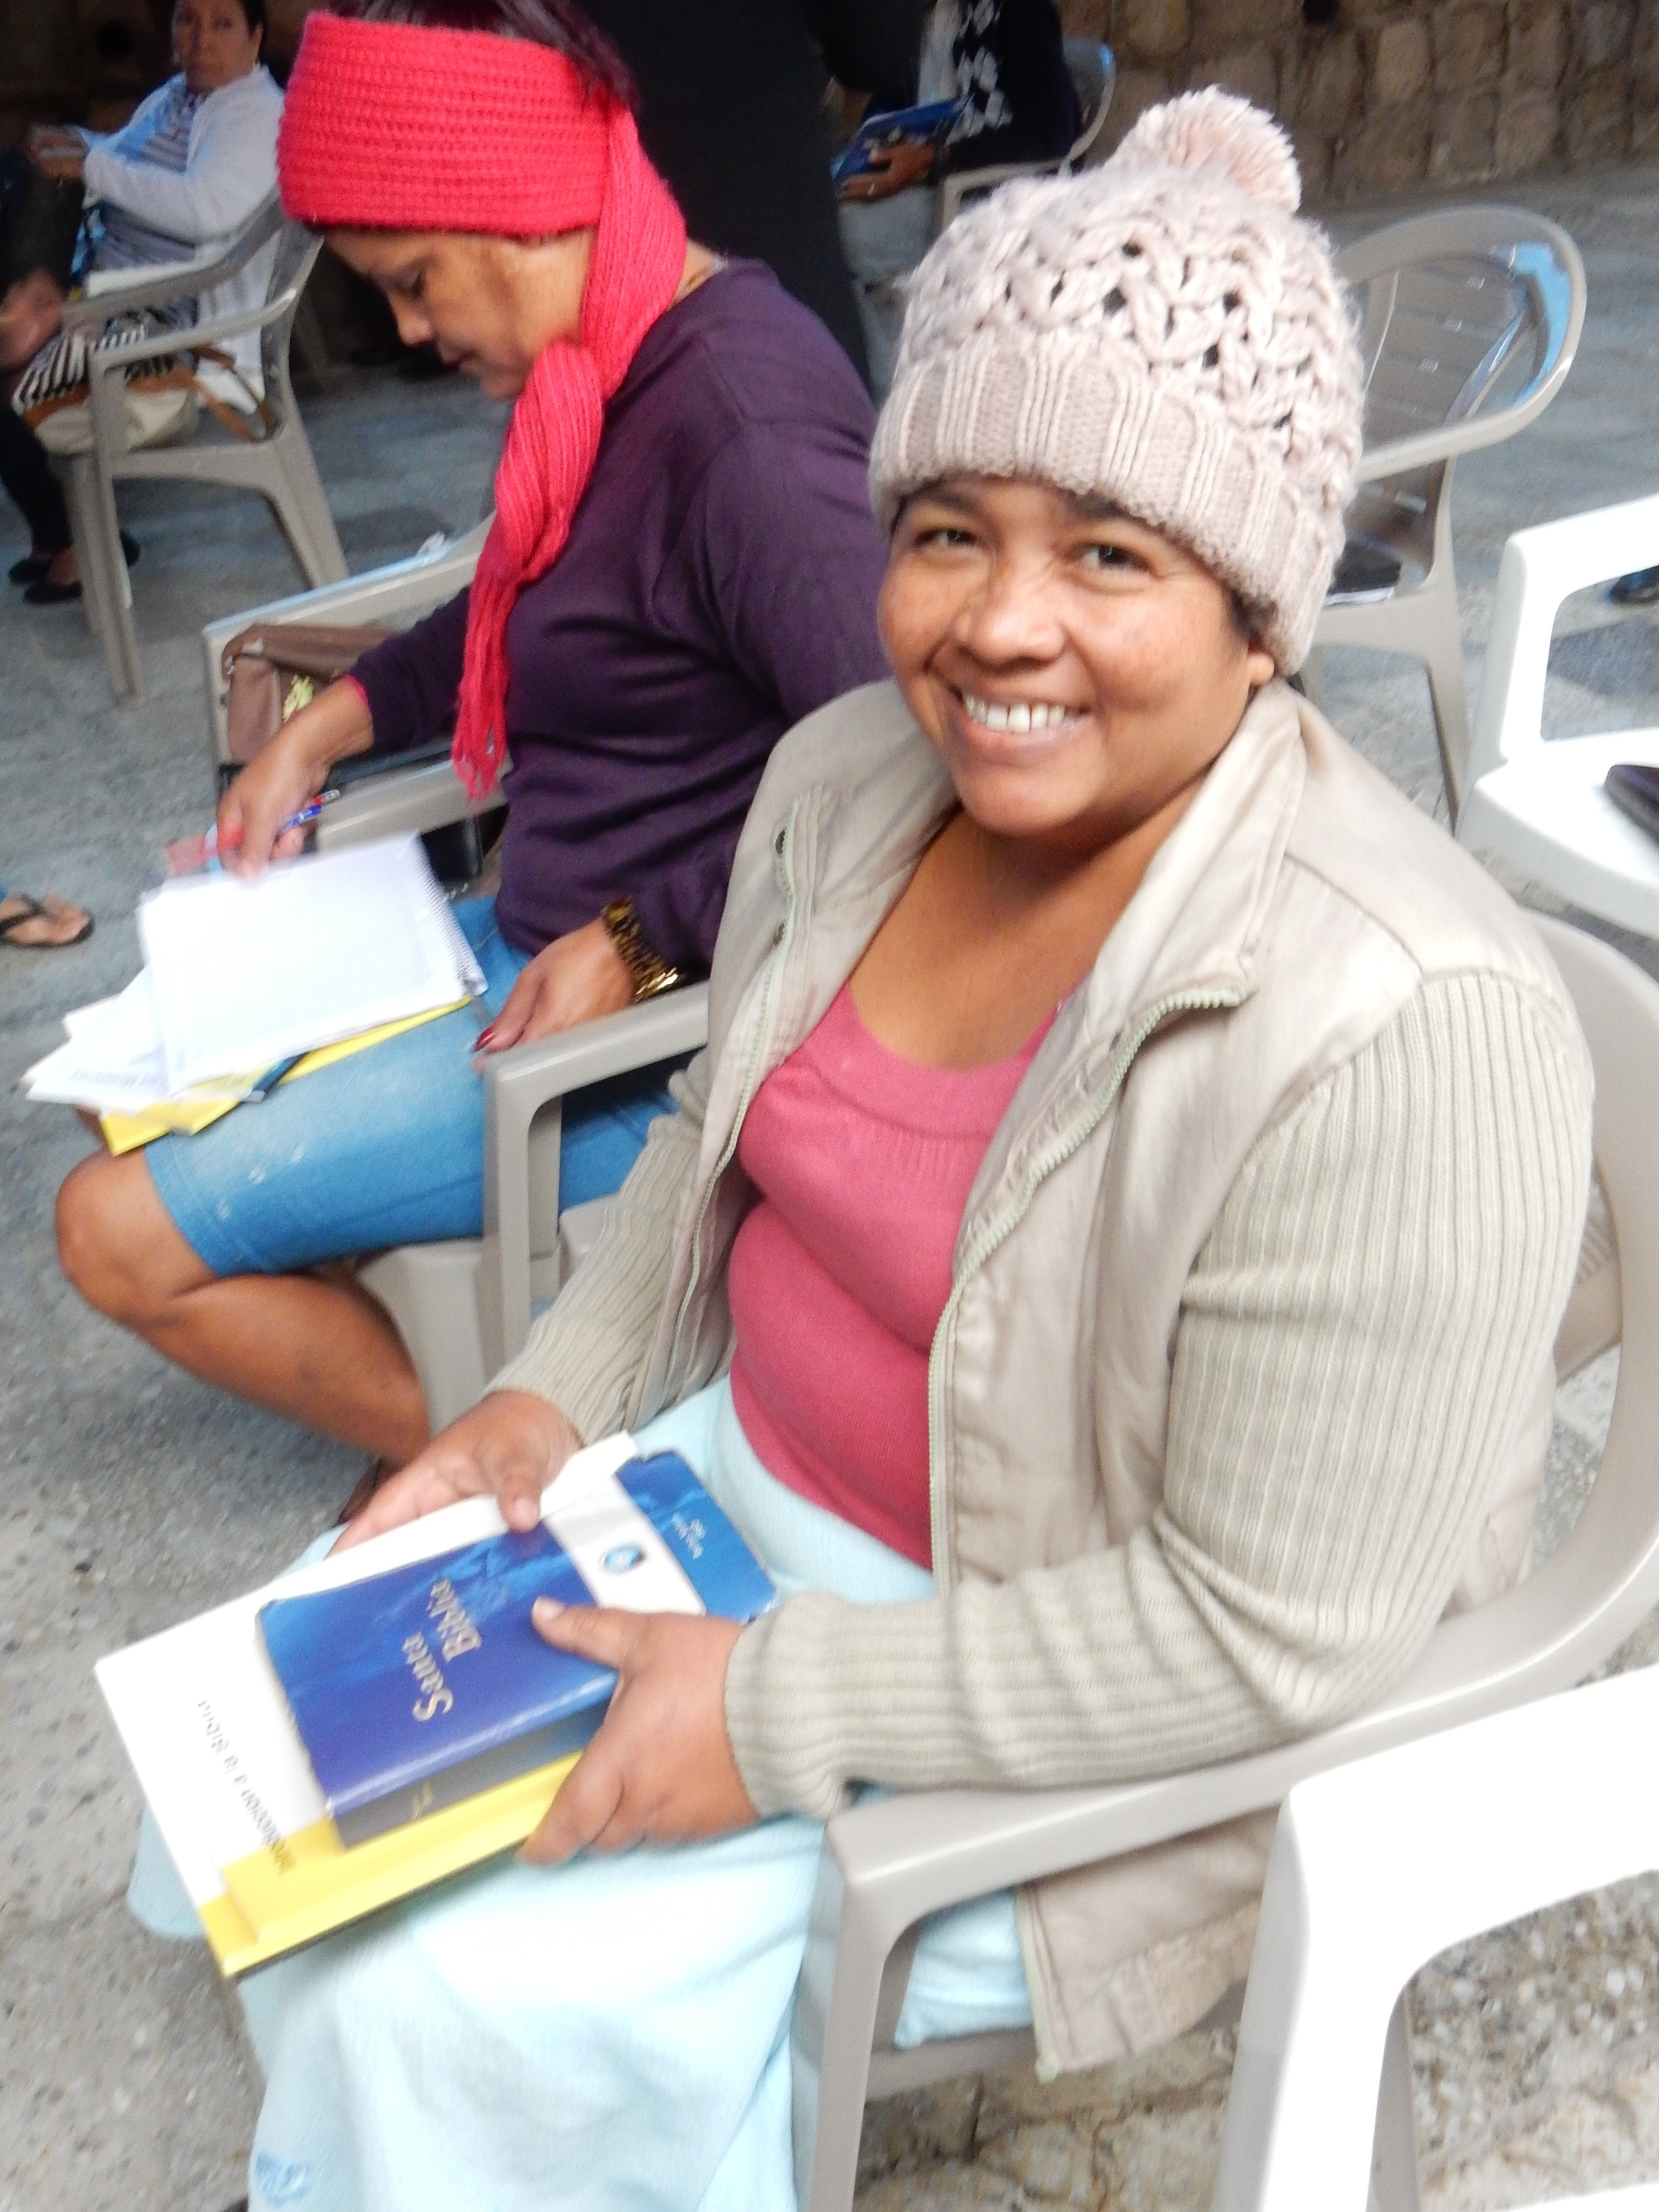 Virginia Lopez is ready to start her theological studies